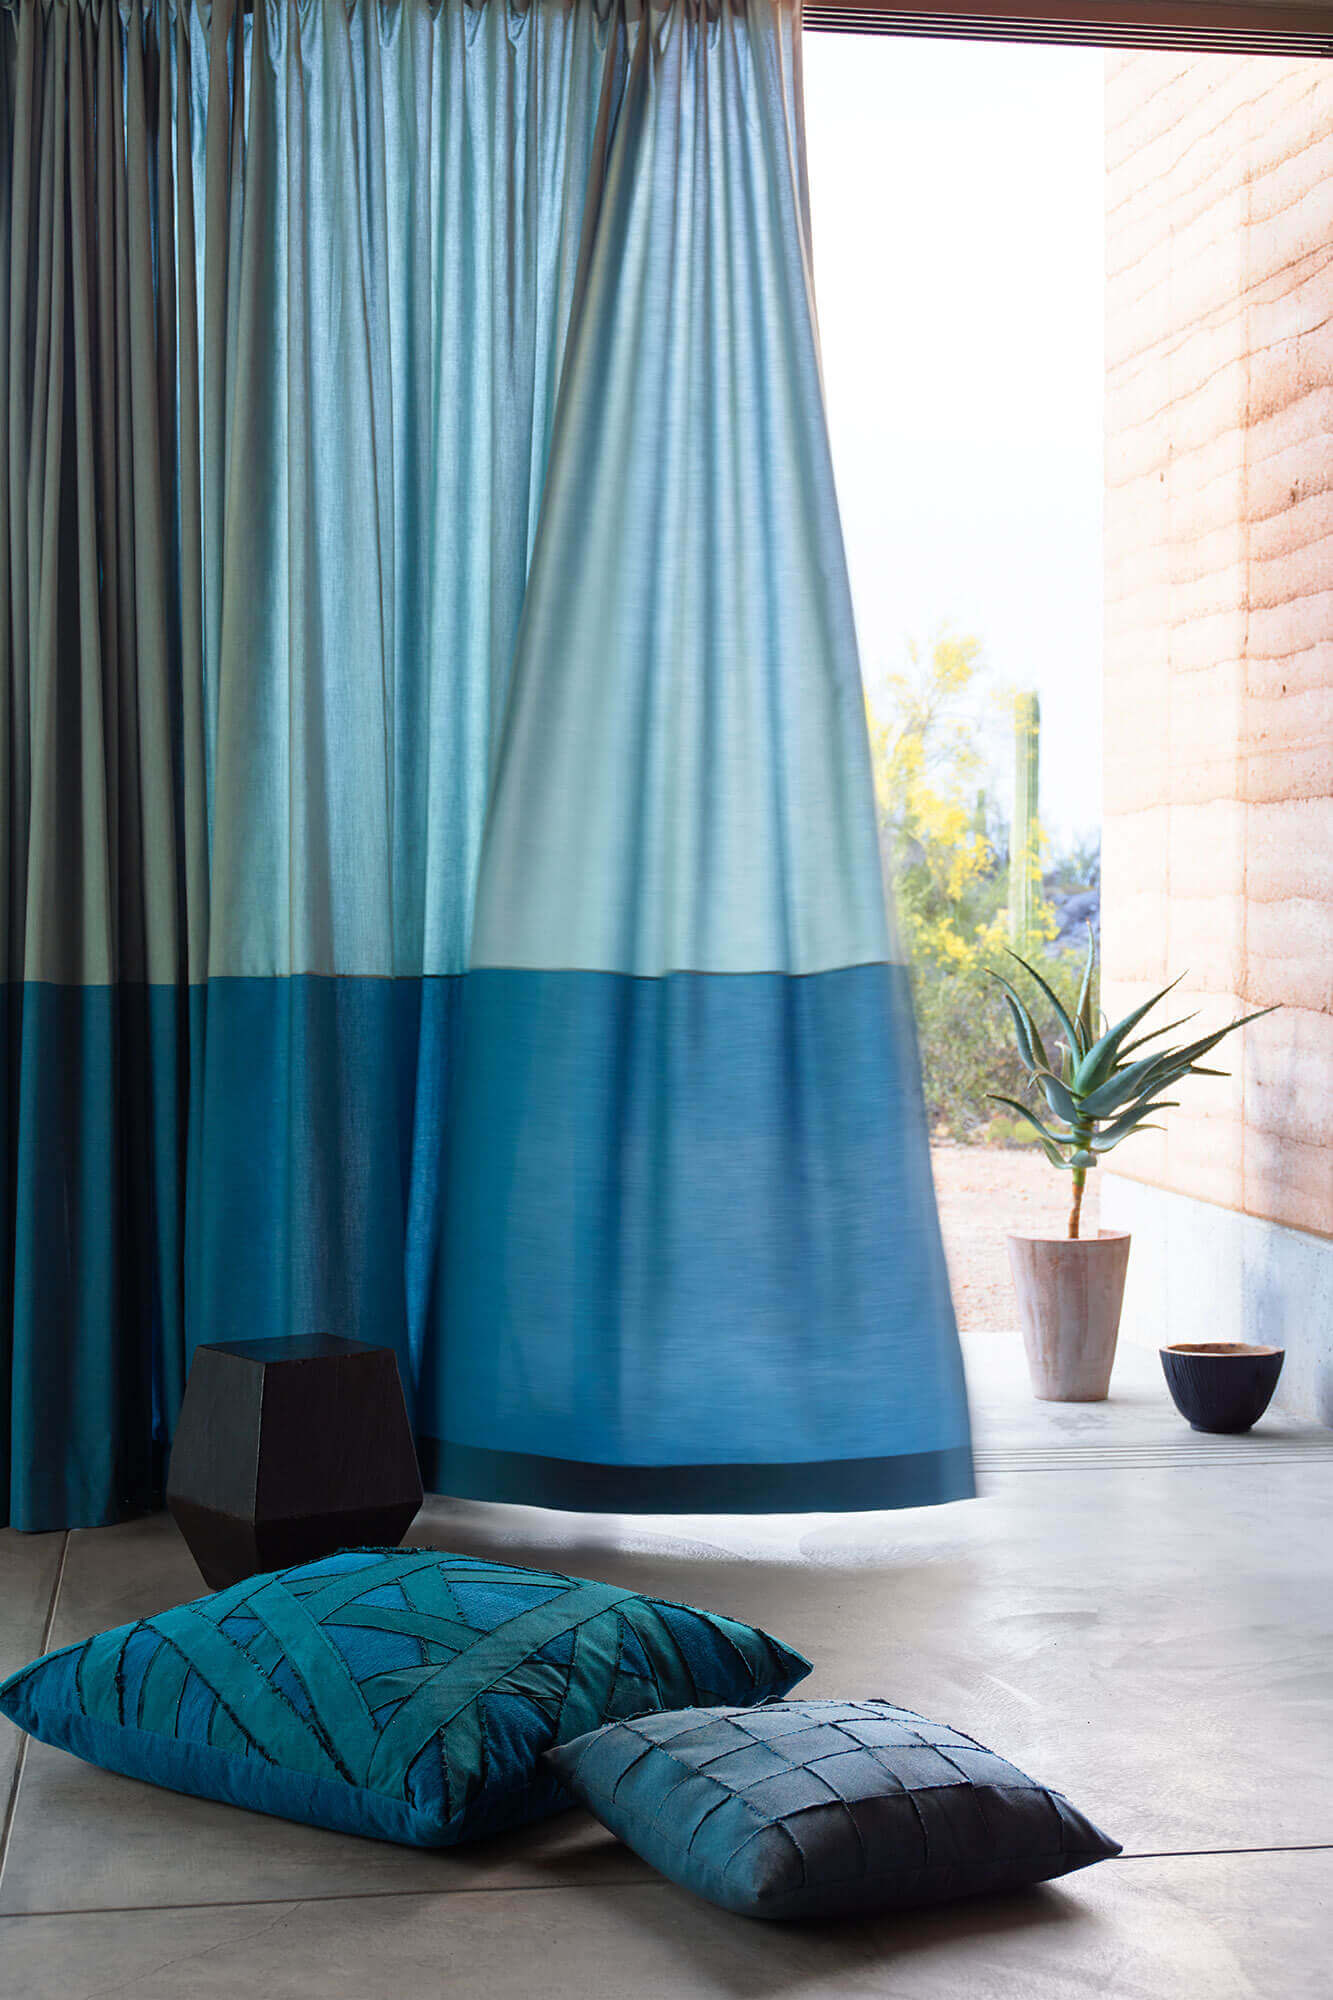 blue drapery flows in the wind with decorative pillows on the floor - Sunbrella Pillows